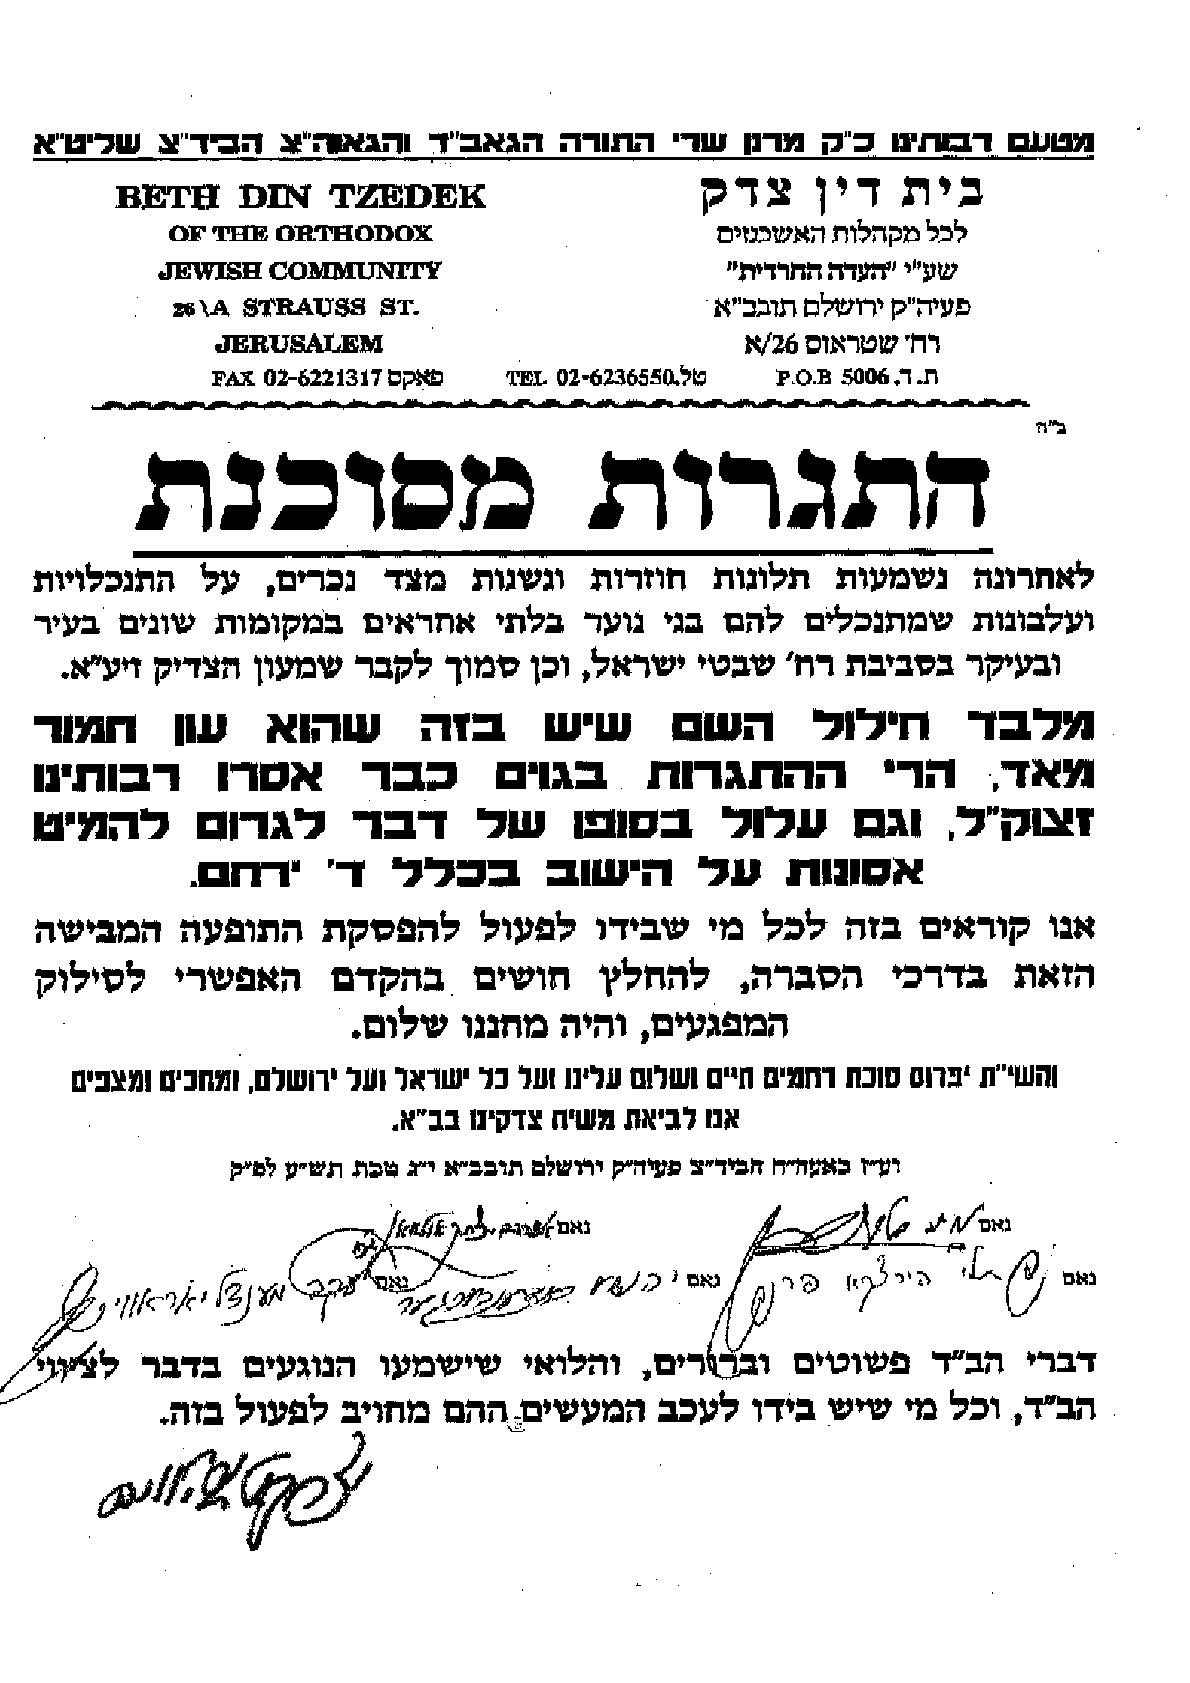 Eida Haredit Badatz and Gaived Statement against Harassment of Gentiles